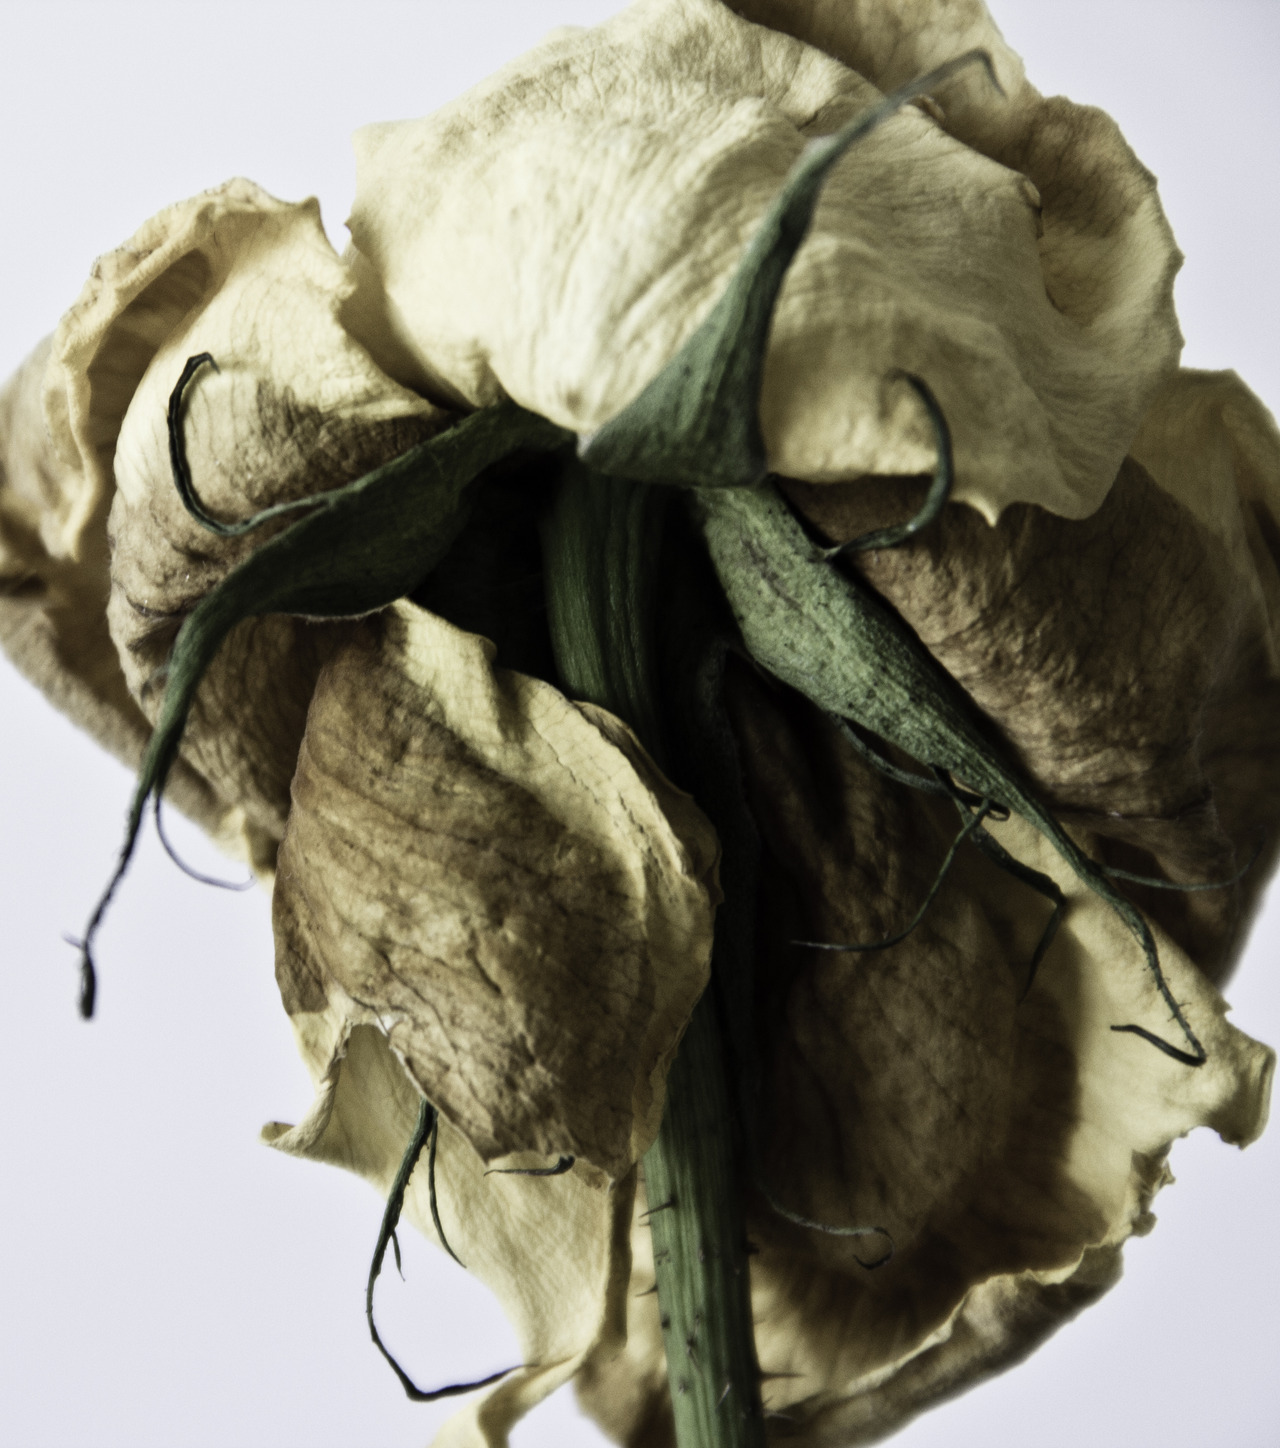 Dried rose - Tássia B.